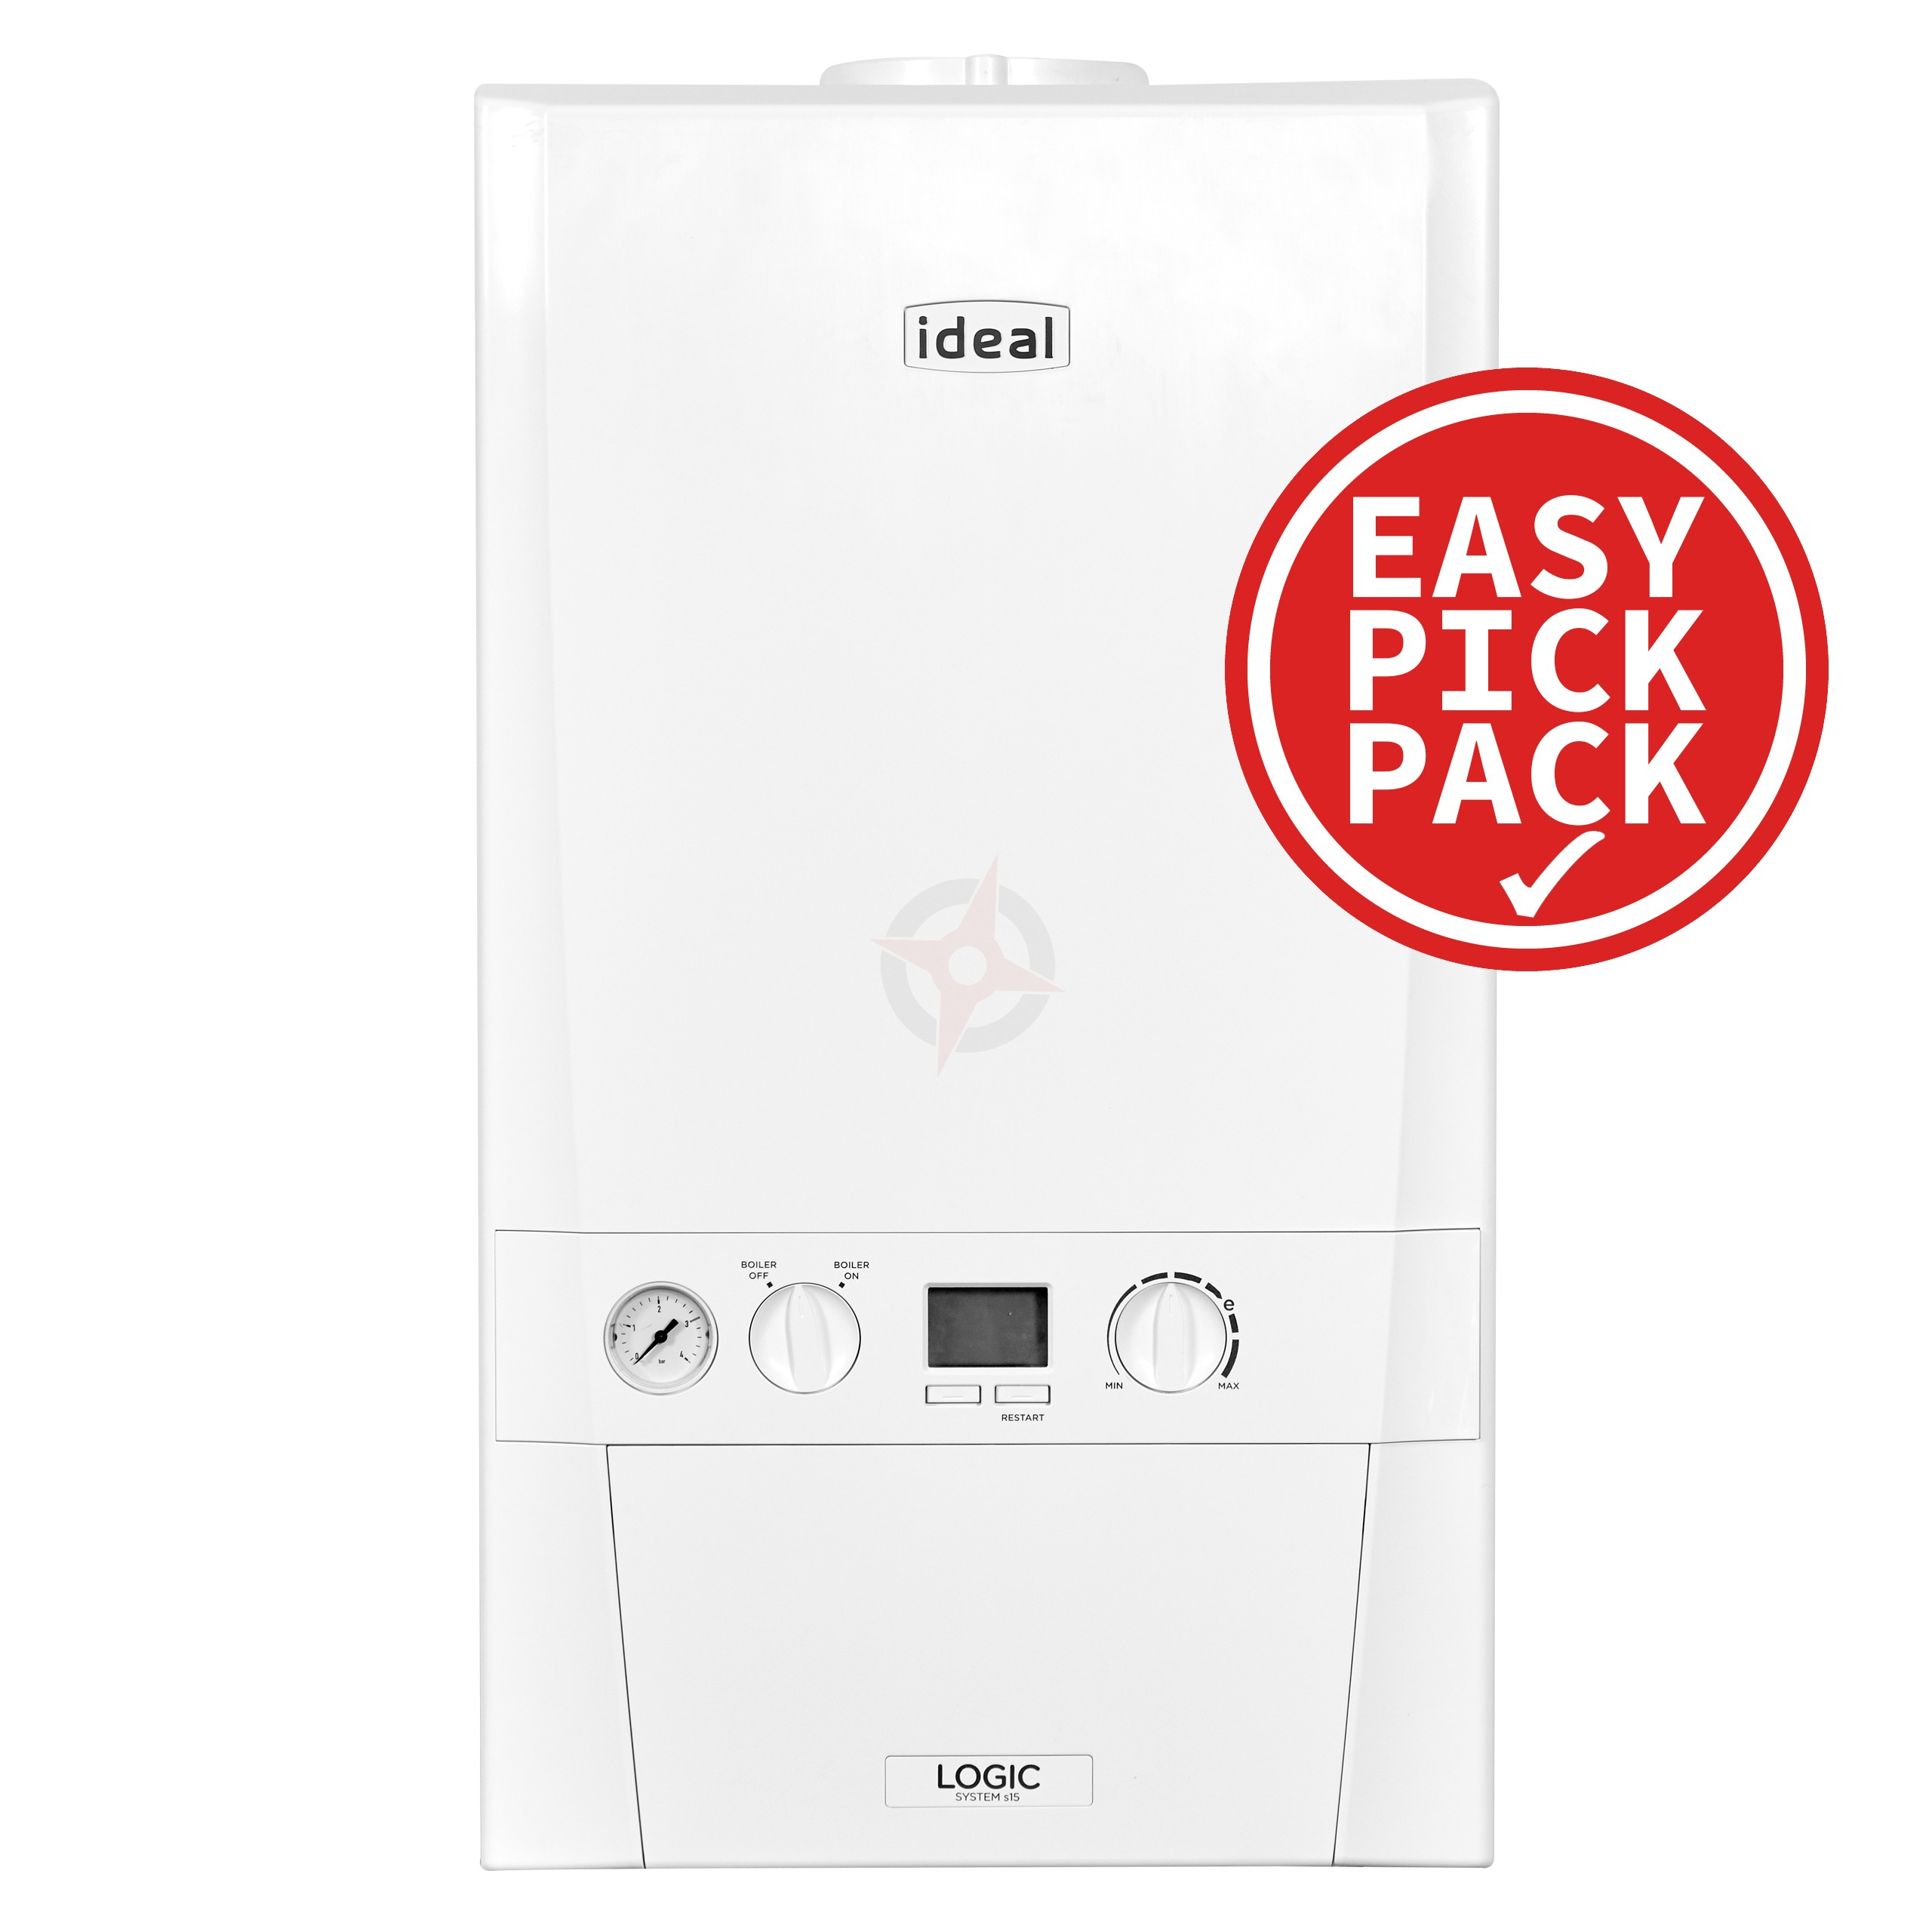 Ideal Logic+ (Plus Model) 30 (ErP) System Boiler Easy Pick Pack